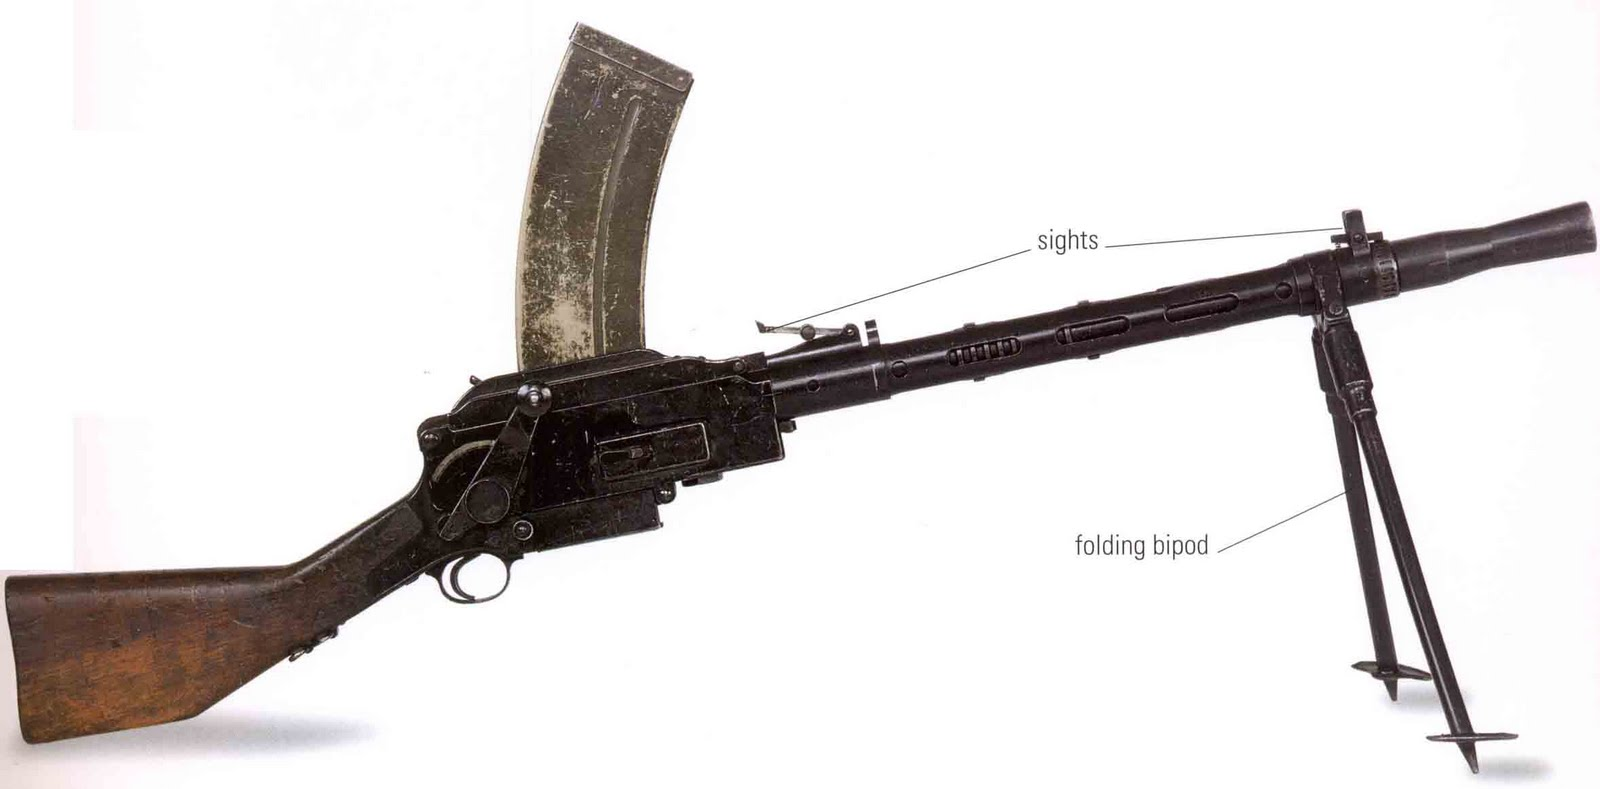 the role of machine guns in the first world war essay Machine guns were one of the main killers in the war a single man almost had  no chance against it machine guns could fire about 400-600 bullets per minute.